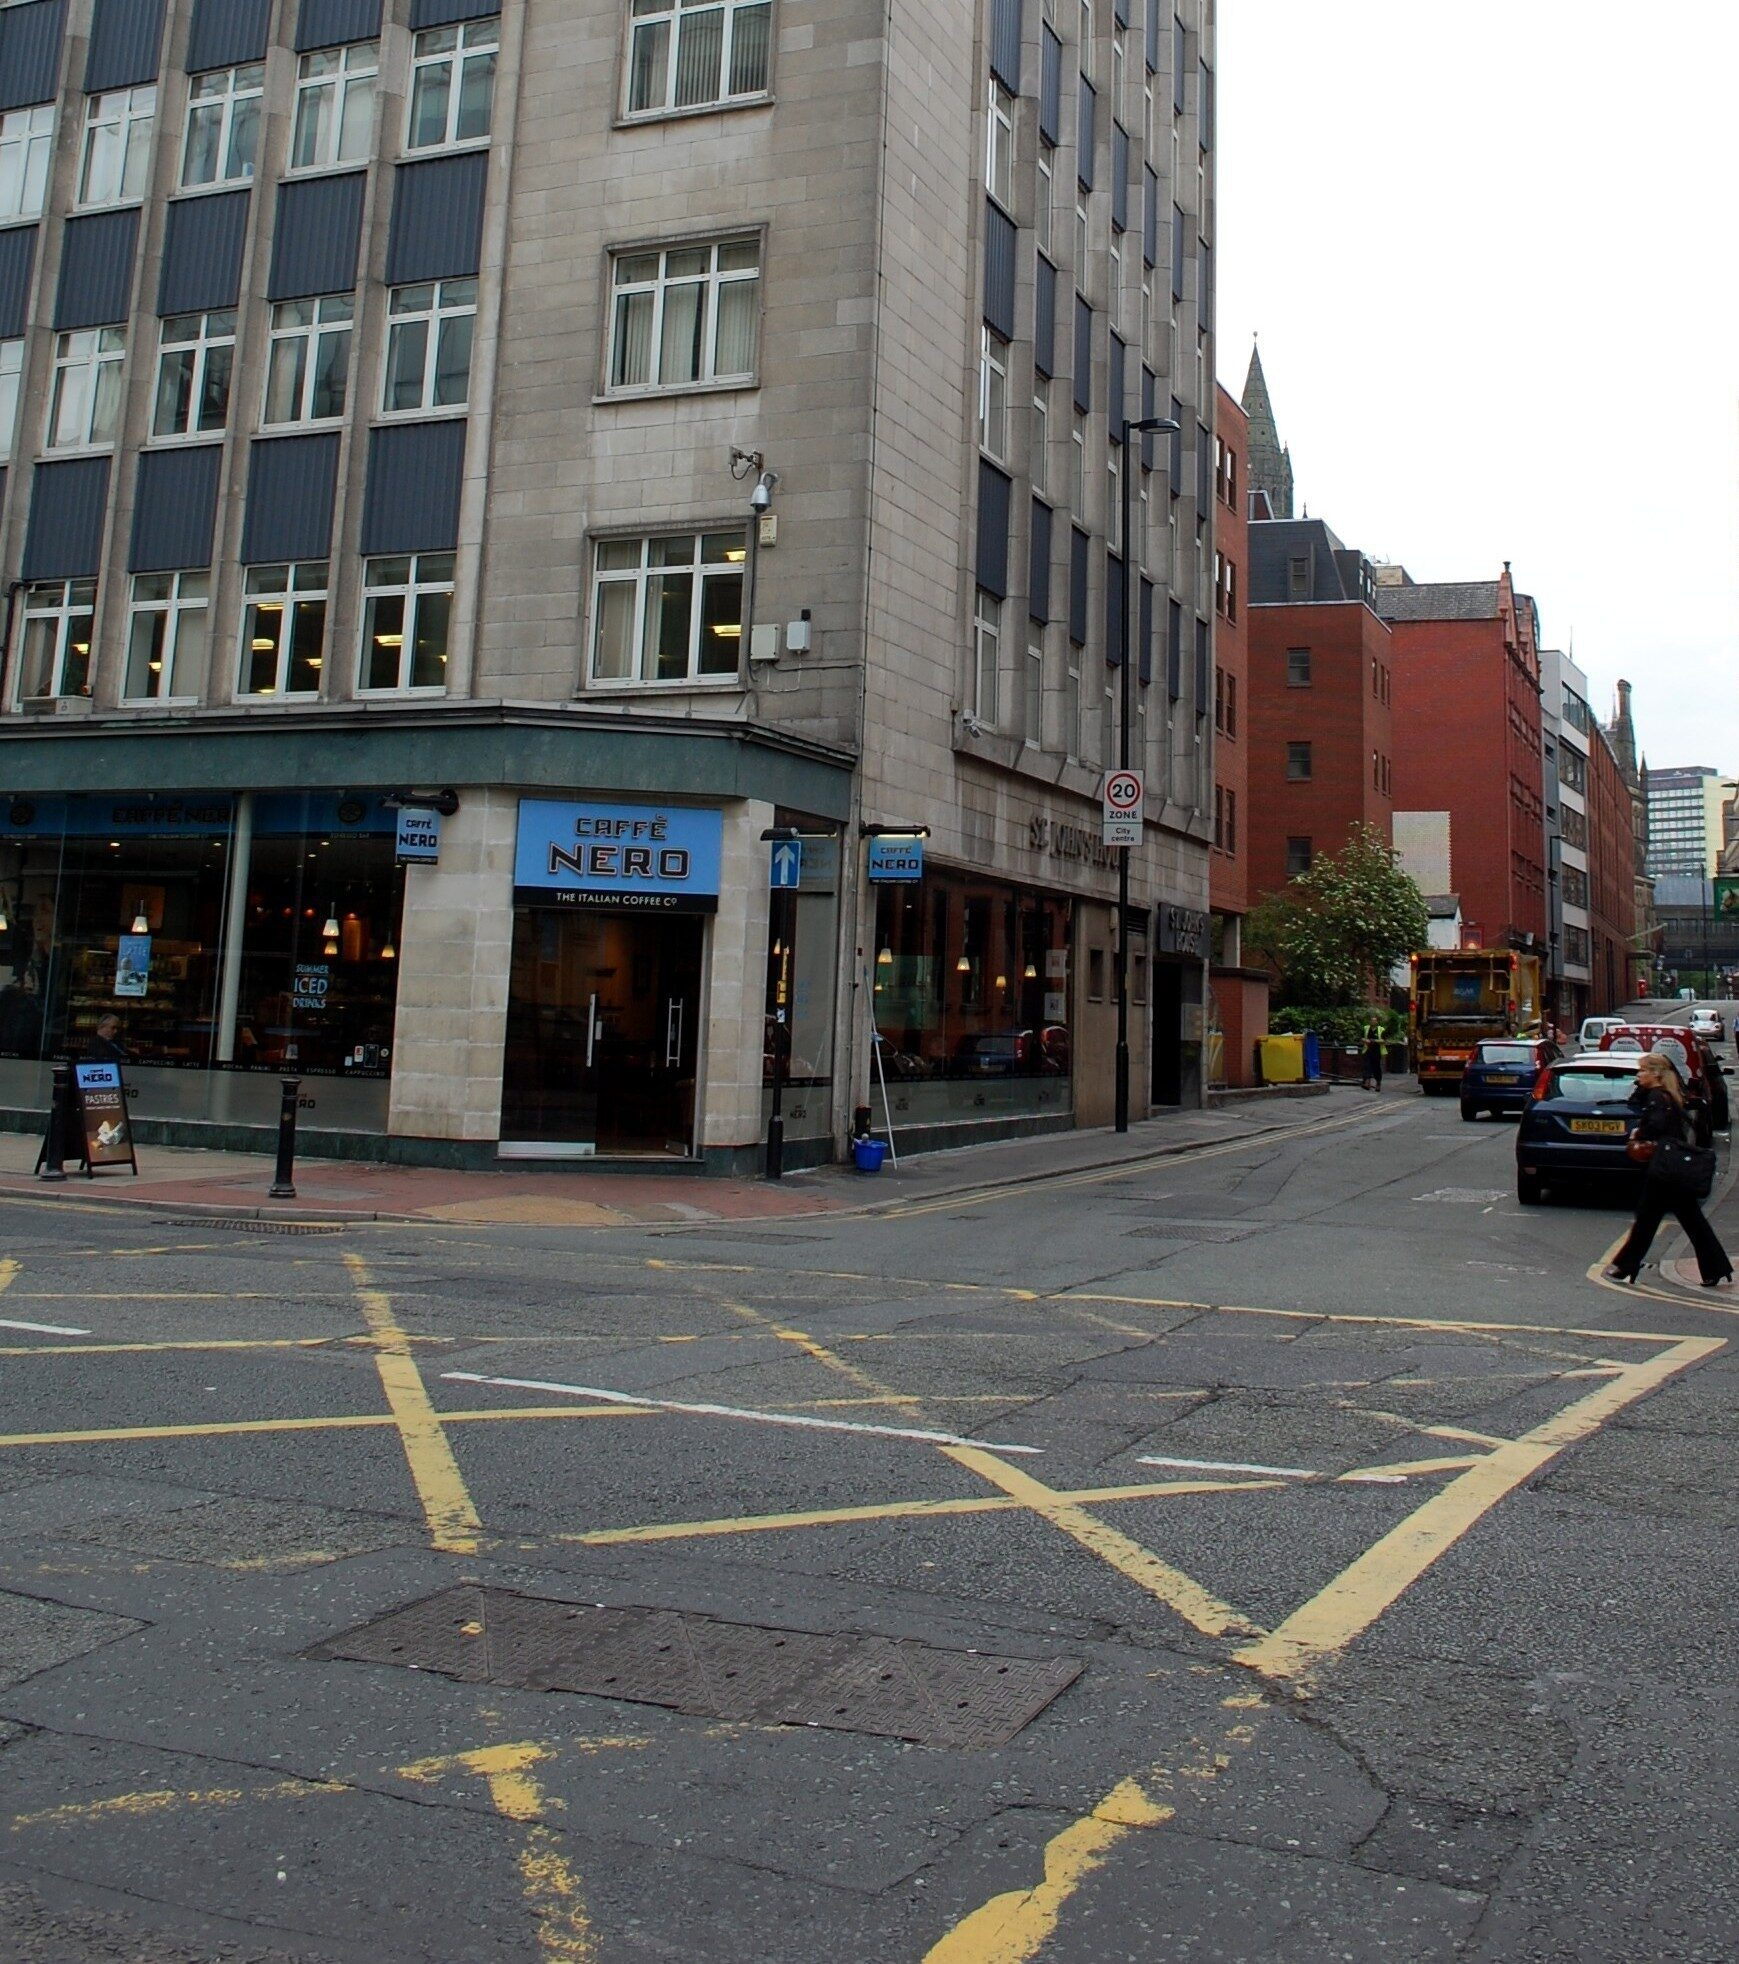 Corner of Deansgate and Lloyd St.